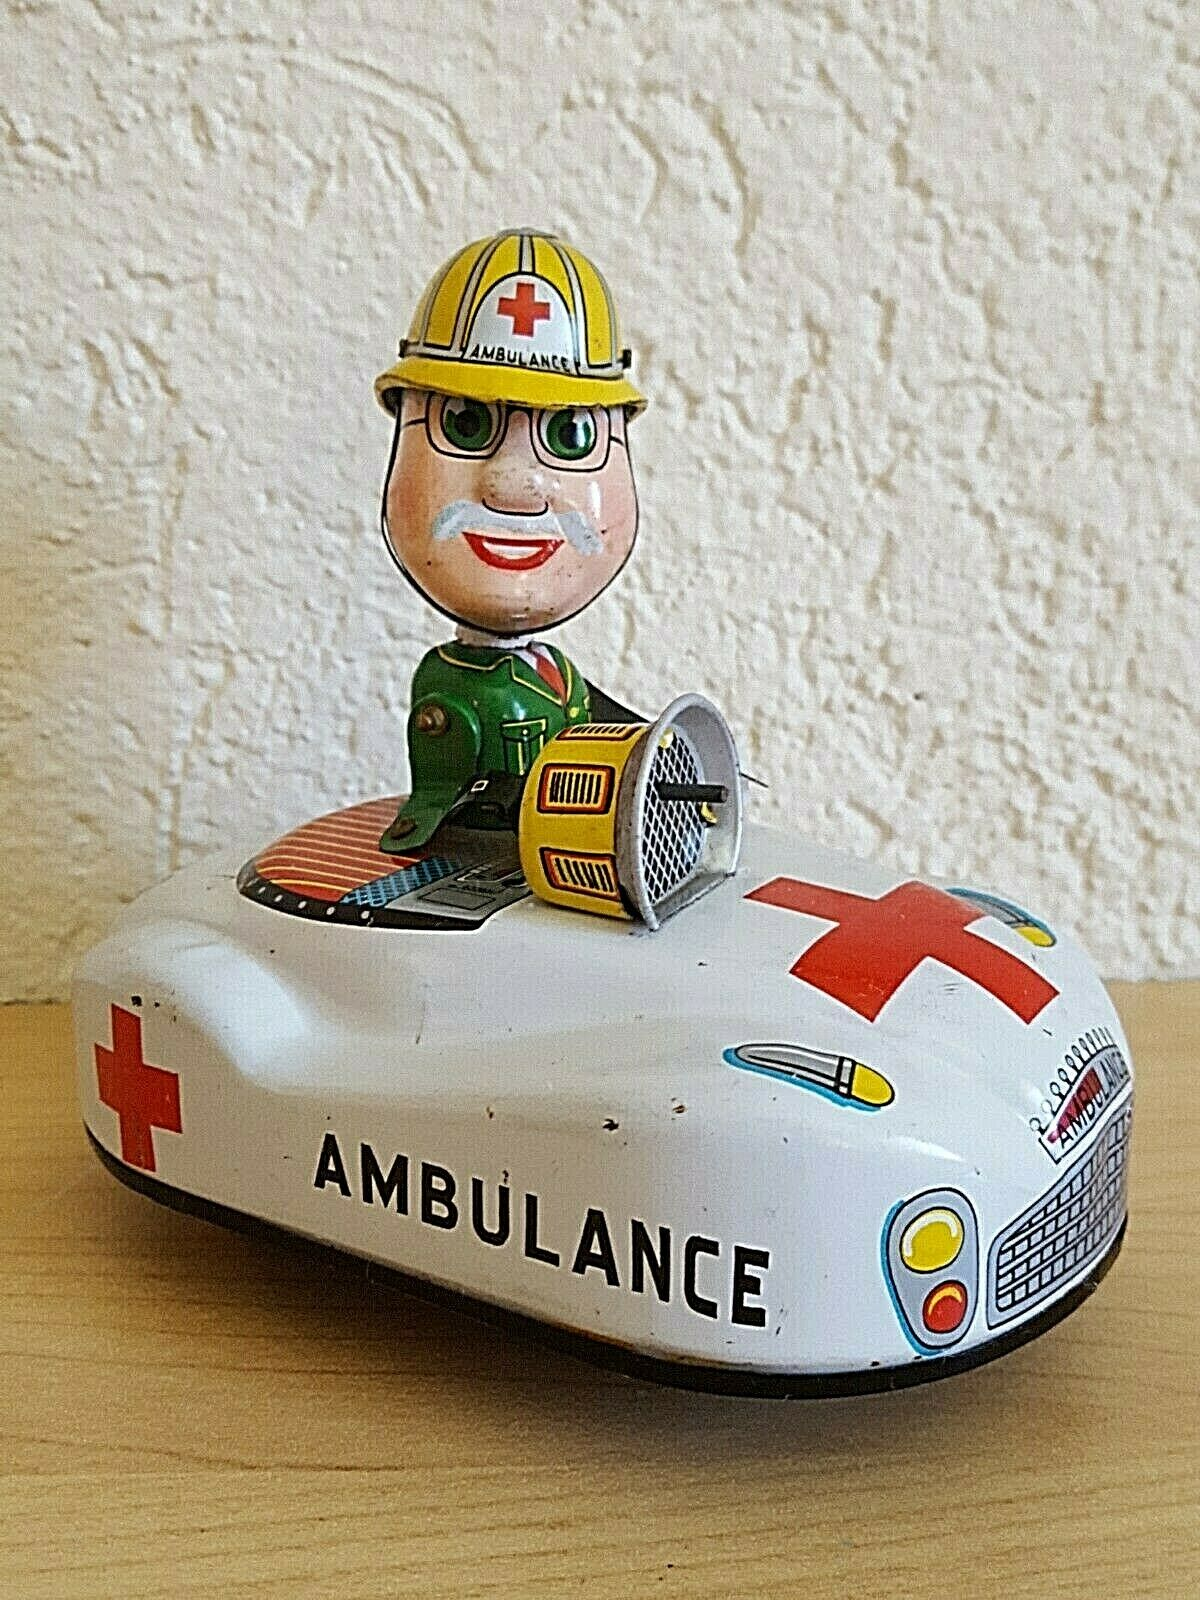 Bump N Go KO Yoshiya Kobe Yoko Wind Up Siren Ambulance Friction Motor Toy Car